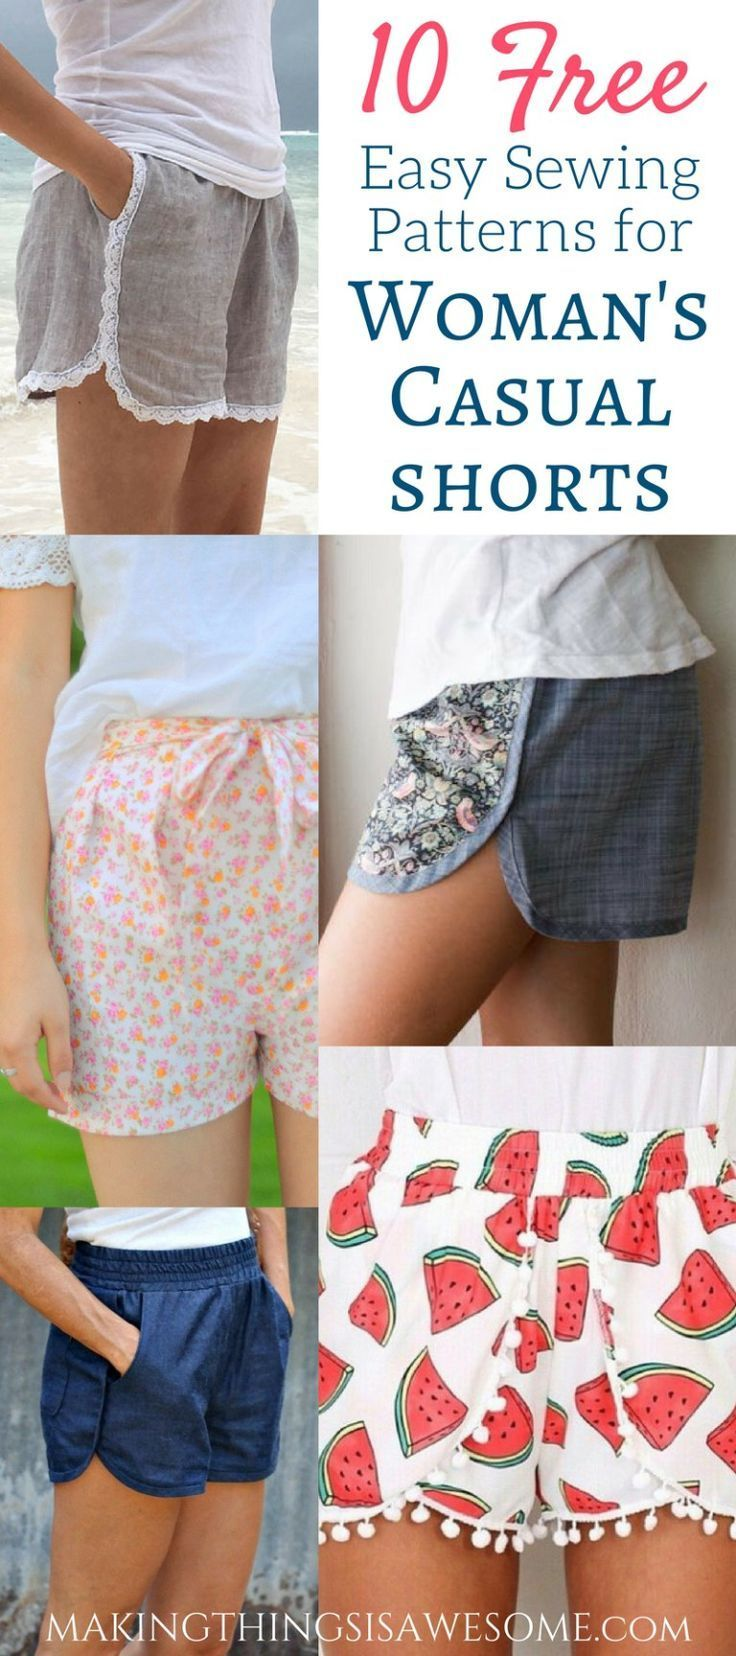 10 Free Woman s Casual Shorts Sewing Patterns Round up Making Things is Awesome